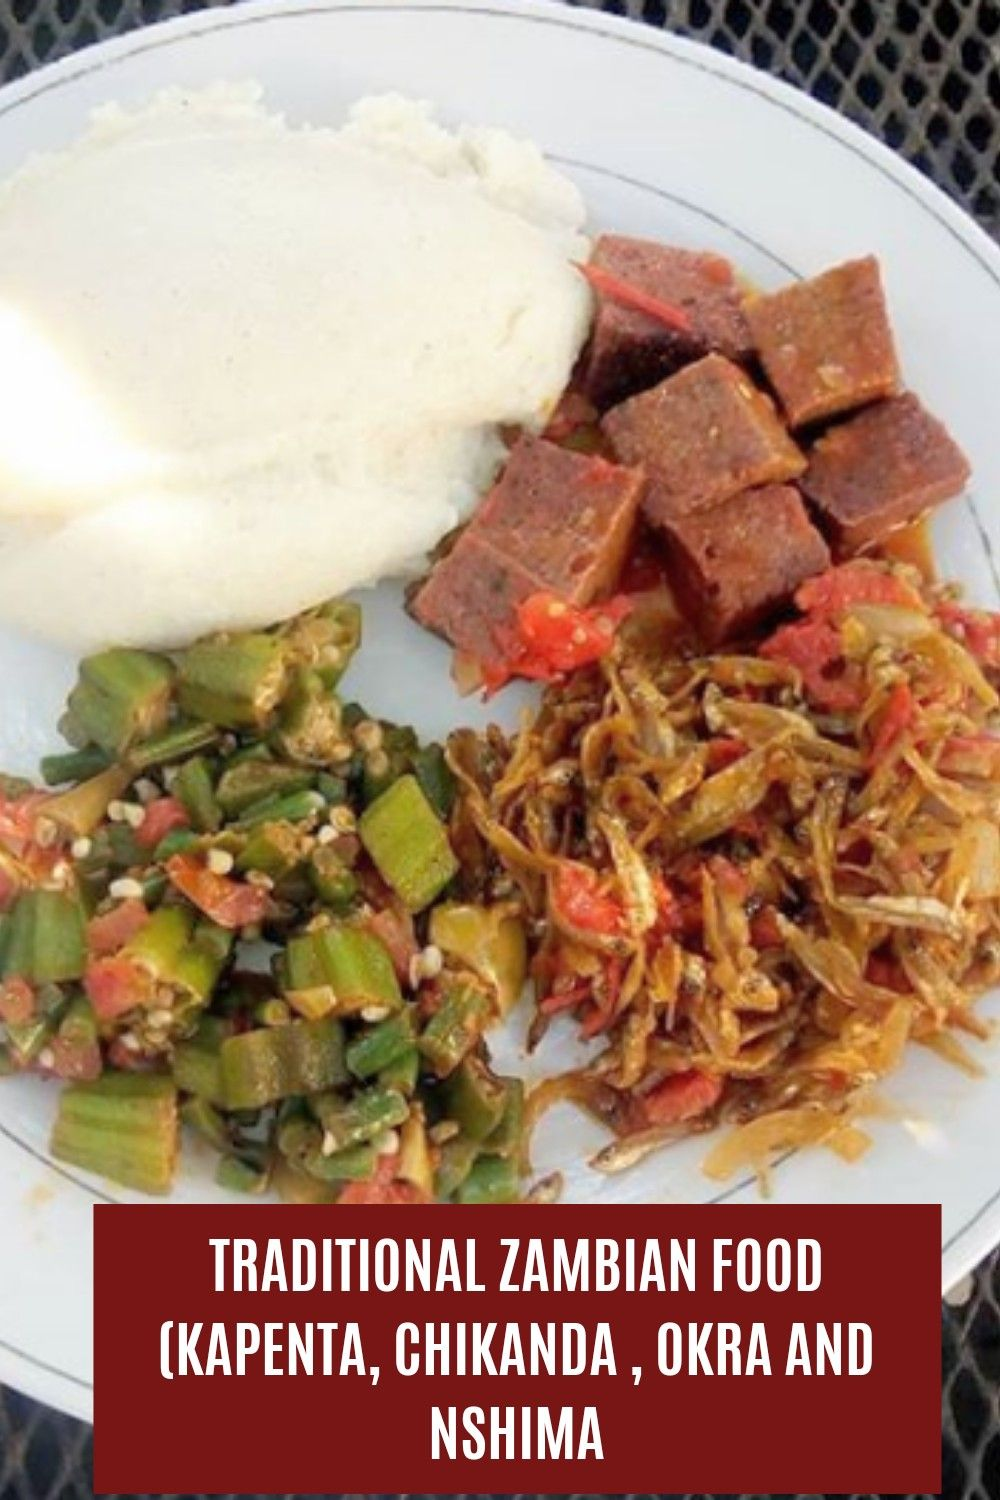 Traditional Zambian food, Kapenta, Chikanda and Nshima in